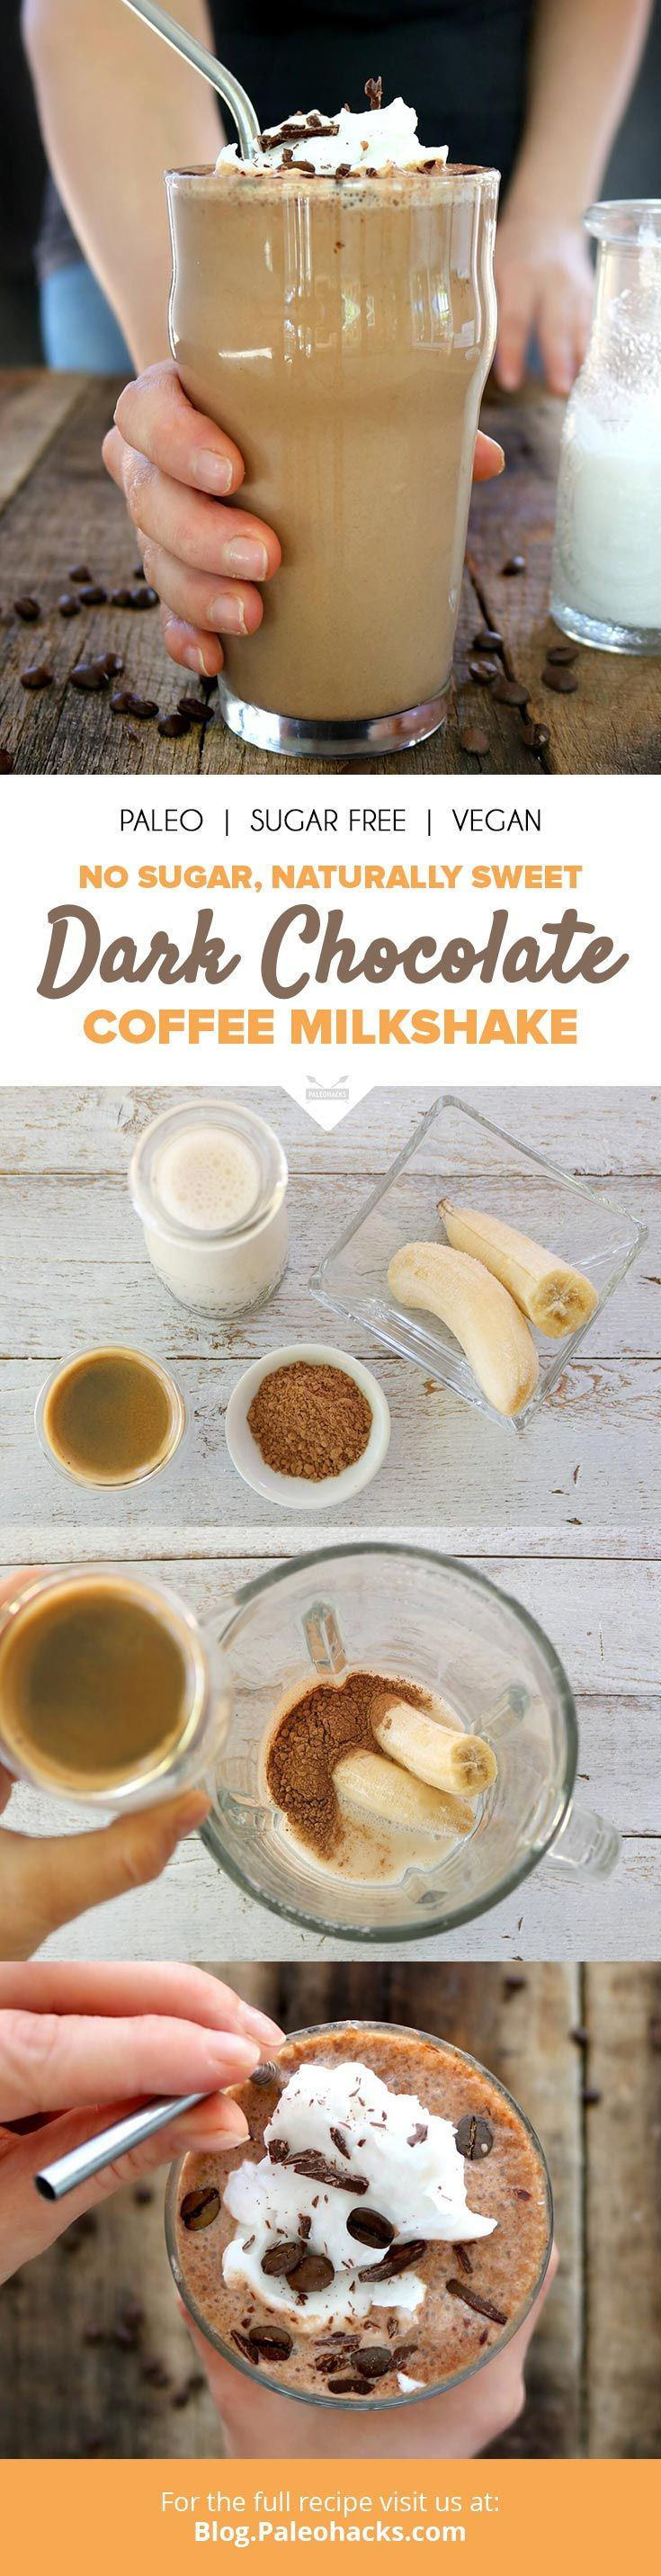 No Sugar, Naturally Sweet Dark Chocolate Coffee Milkshake #justeatrealfood #paleohacks